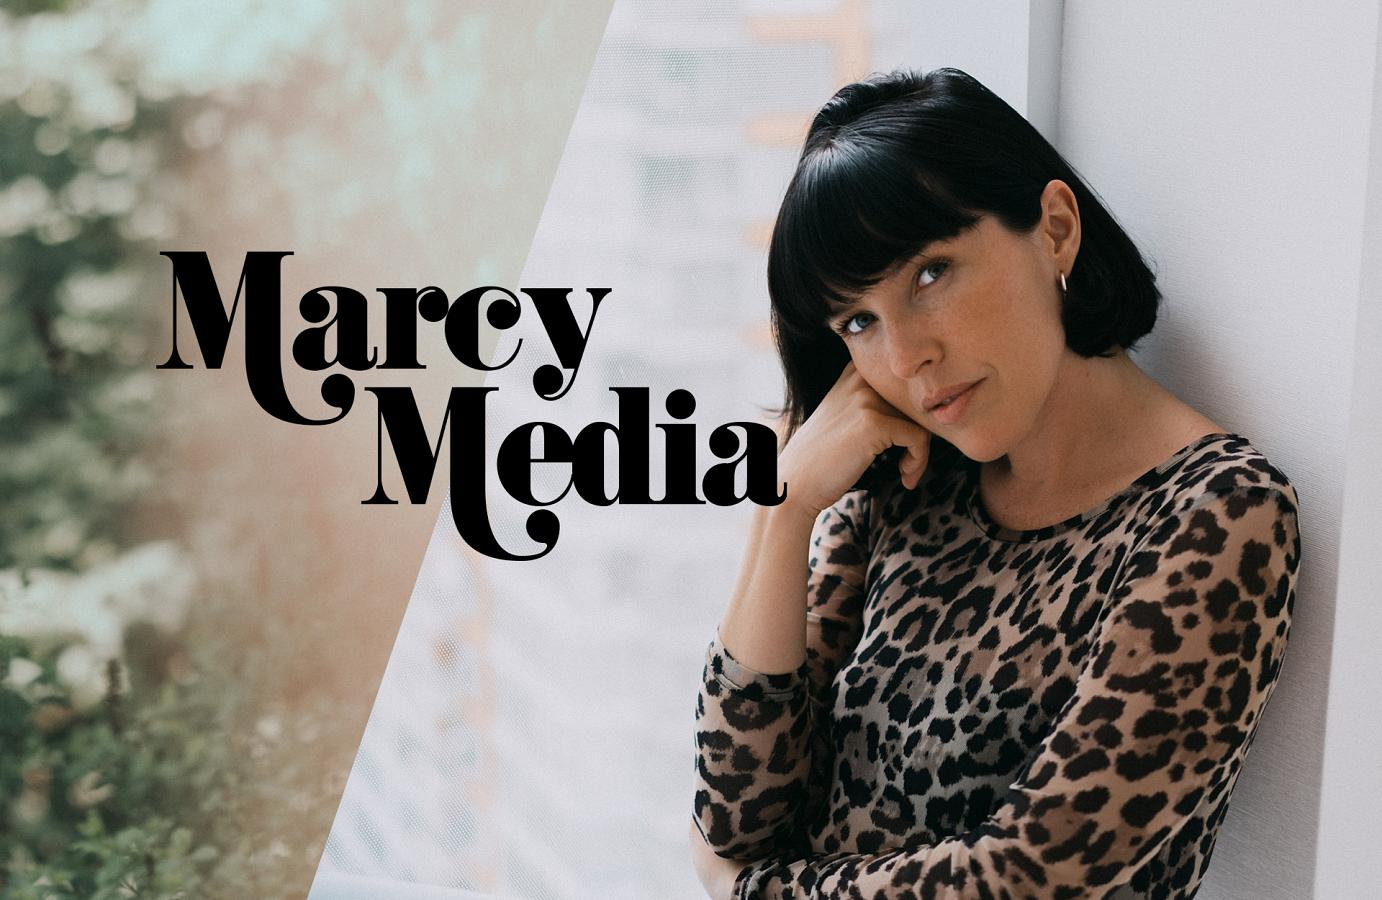 Nicole 'Not Marcy' Robertson Lives Her Best Life in the World of Media—with Marcy Media